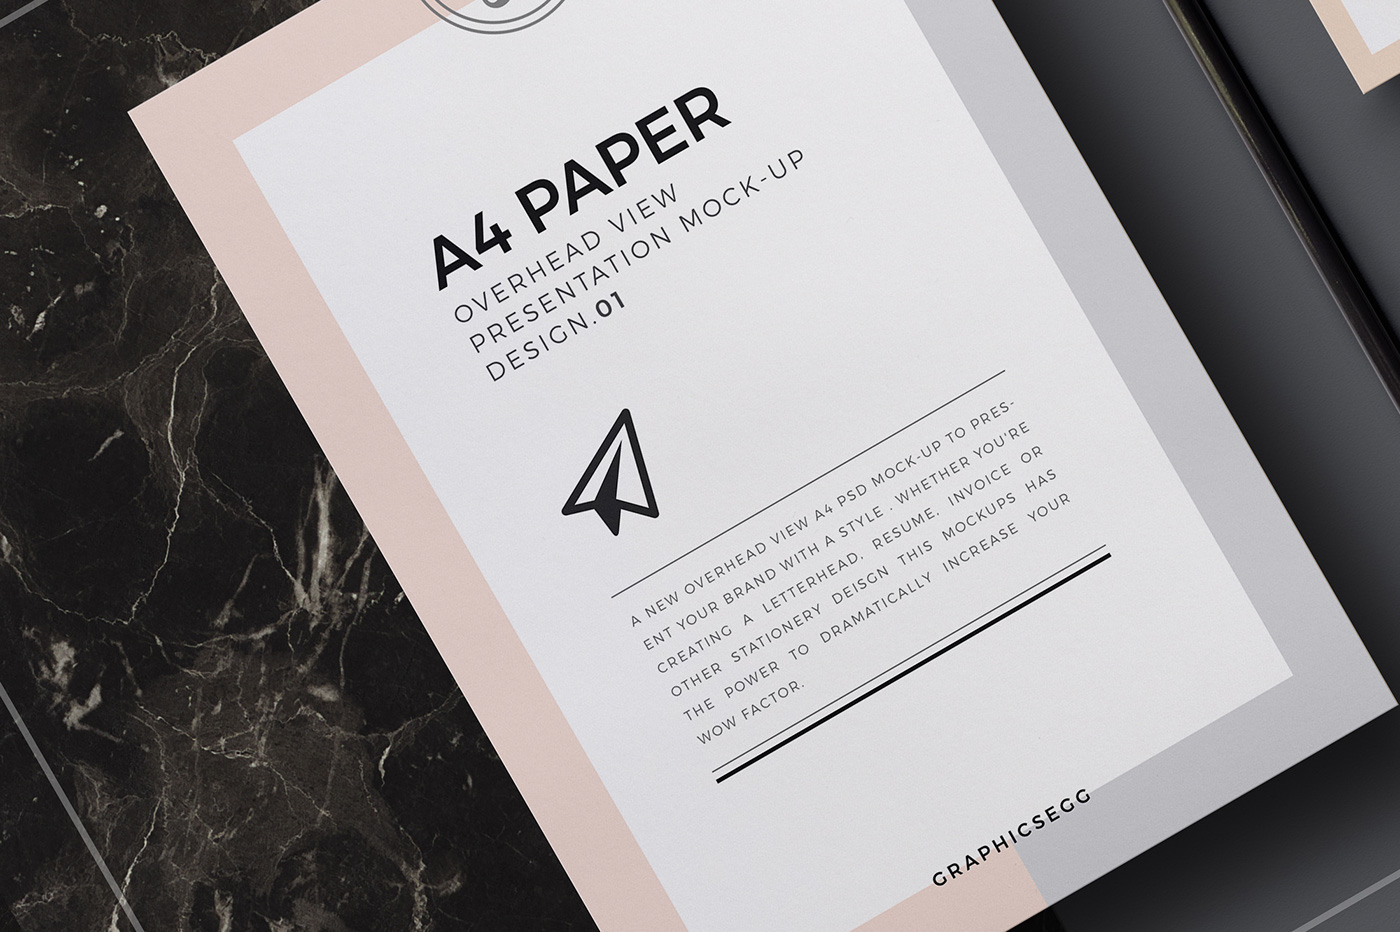 A Paper Overhead View Mockup Free Psd On Behance - Invoice mockup psd free